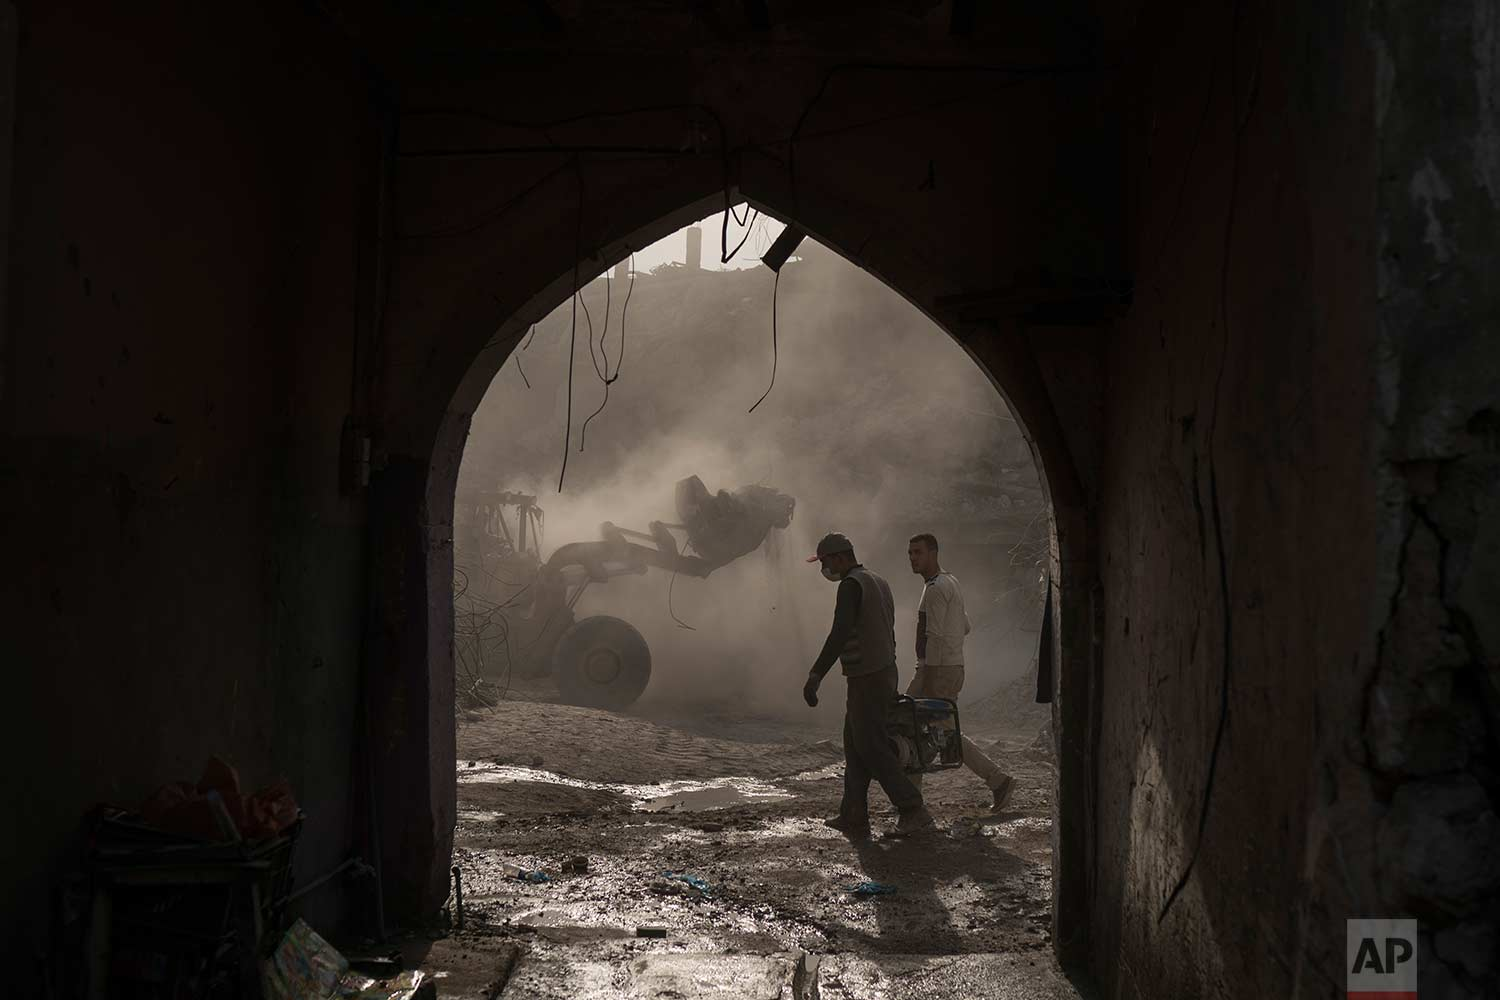 In this Nov. 18, 2017 photo, construction workers carry a generator as a bulldozer removes debris from destroyed shops in the Old City of Mosul, Iraq. Along the neighborhood's gutted roads, a handful of people are beginning to rebuild but the task ahead will take years - and billions of dollars. (AP Photo/Felipe Dana)